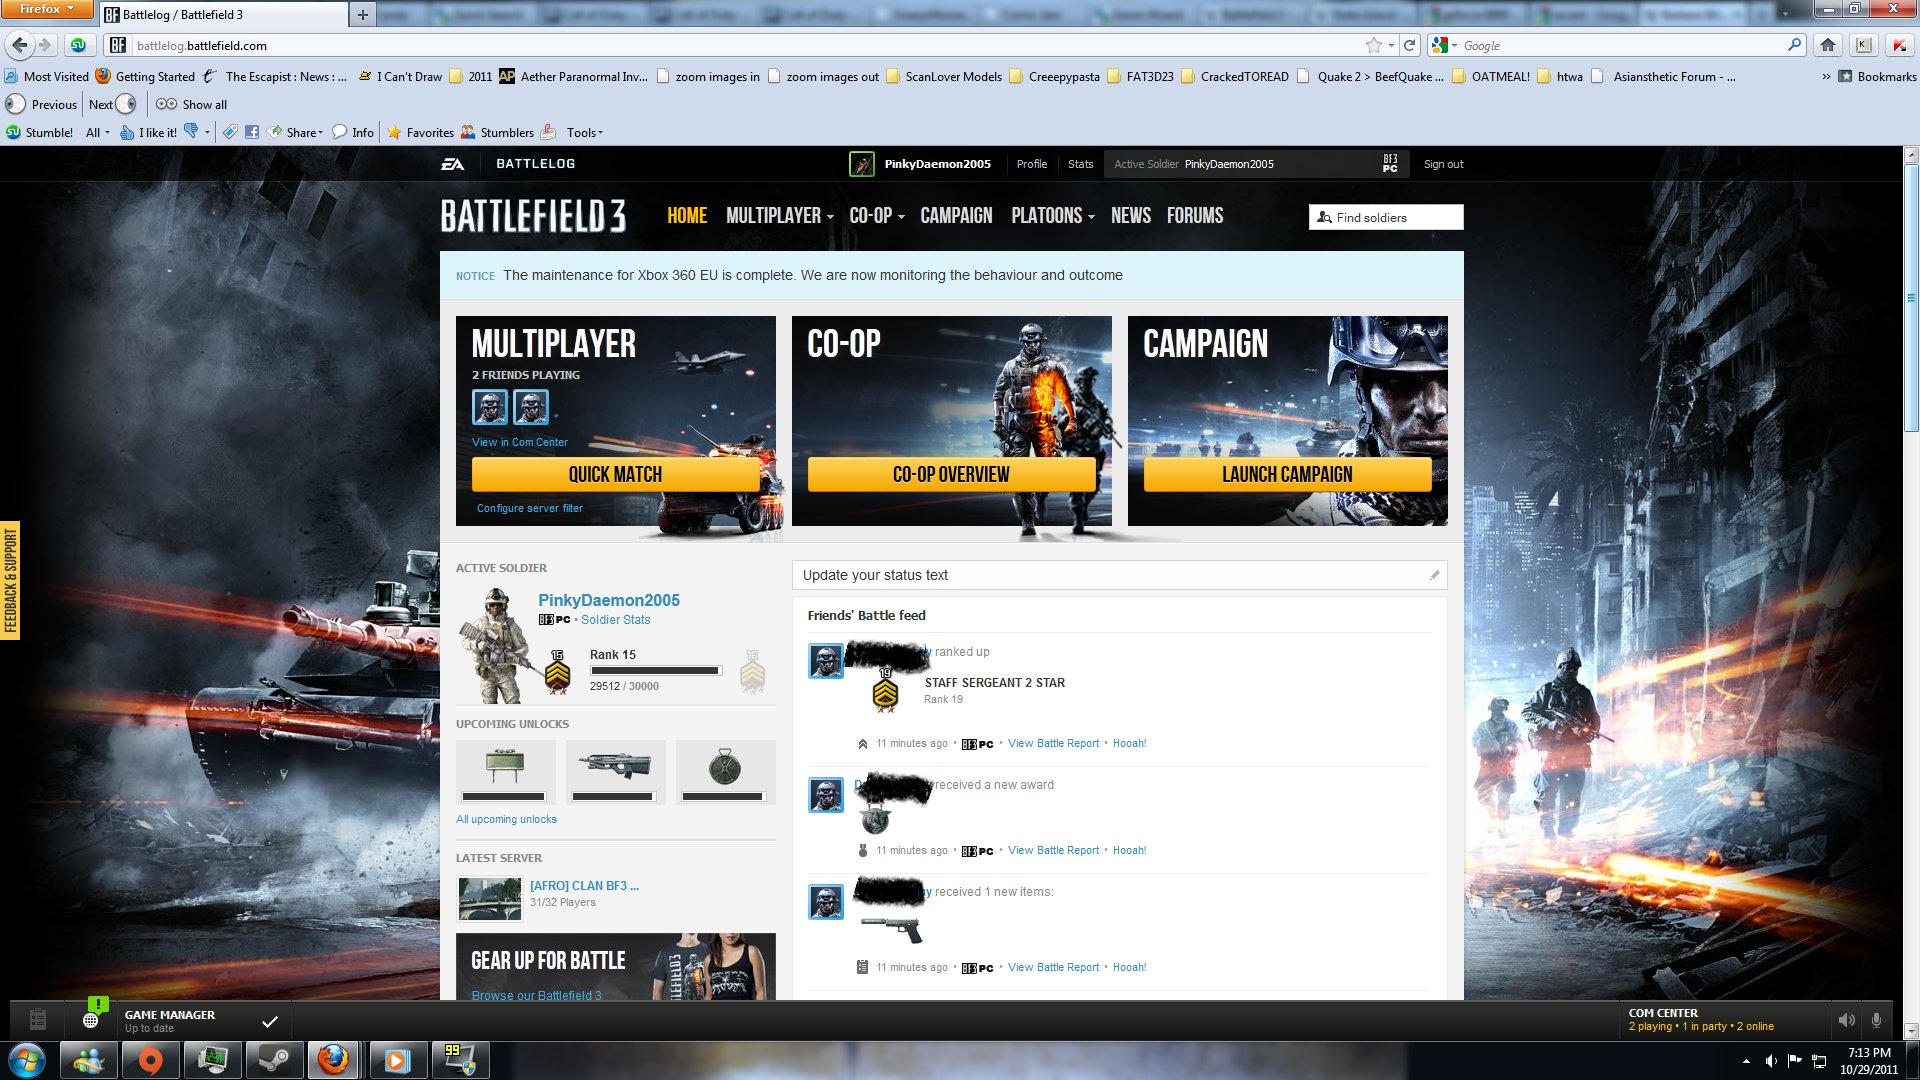 Battlefield 3 Windows The Battlelog interface